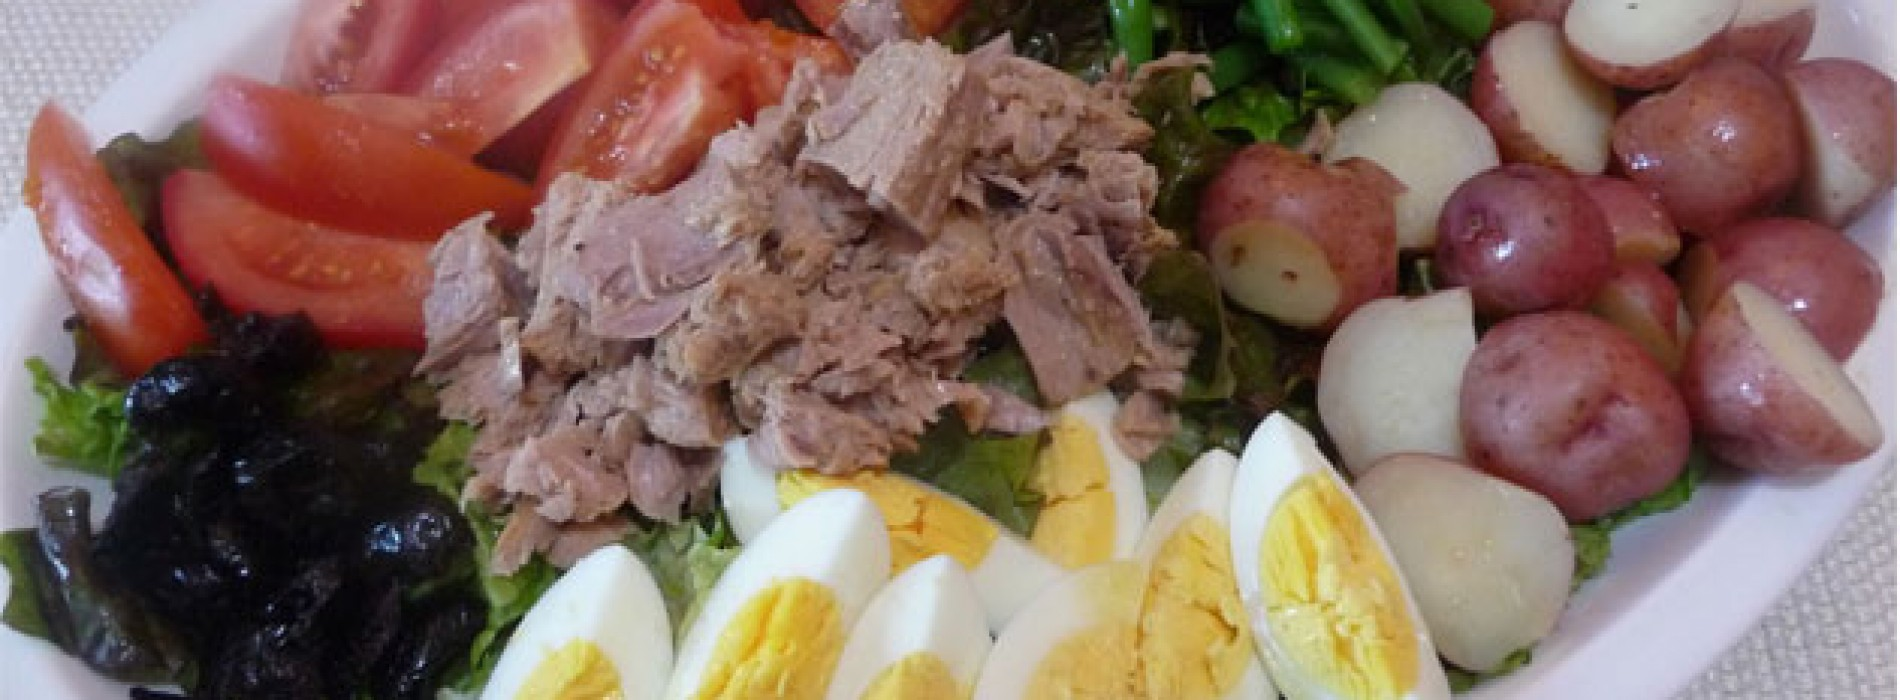 Sponsored Post: Making Nicoise Salad with Walmart Groceries plus a special offer for SPC readers